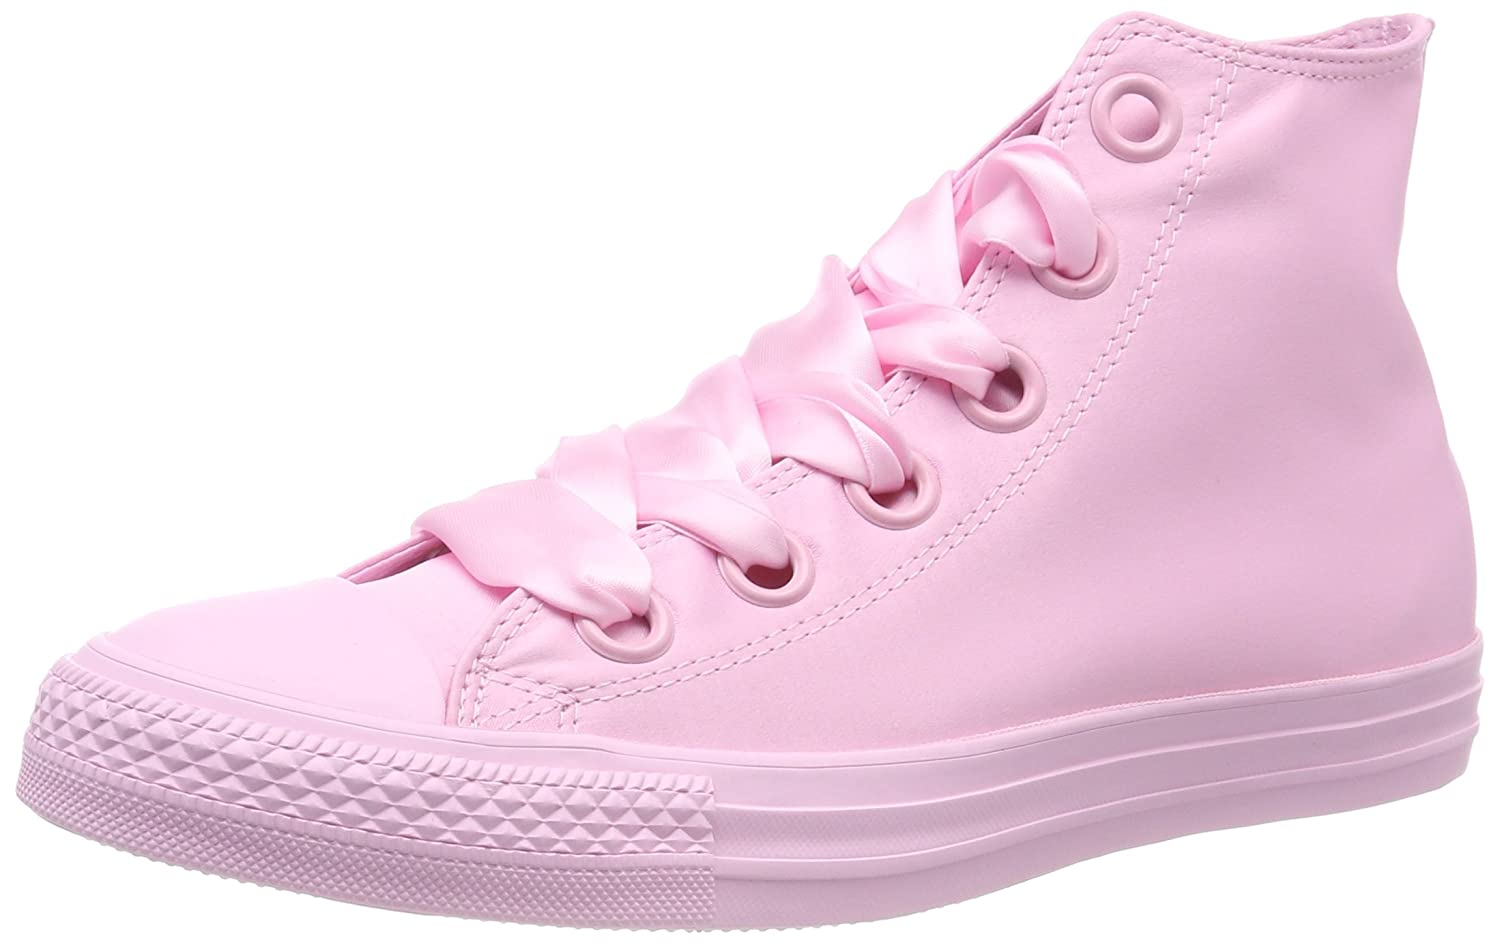 Converse Chuck Taylor All Star Big Eyelet High Top Sneaker Womens Fashion-Sneakers 560657C B075TF59VQ 7.5 B(M) US|Pink